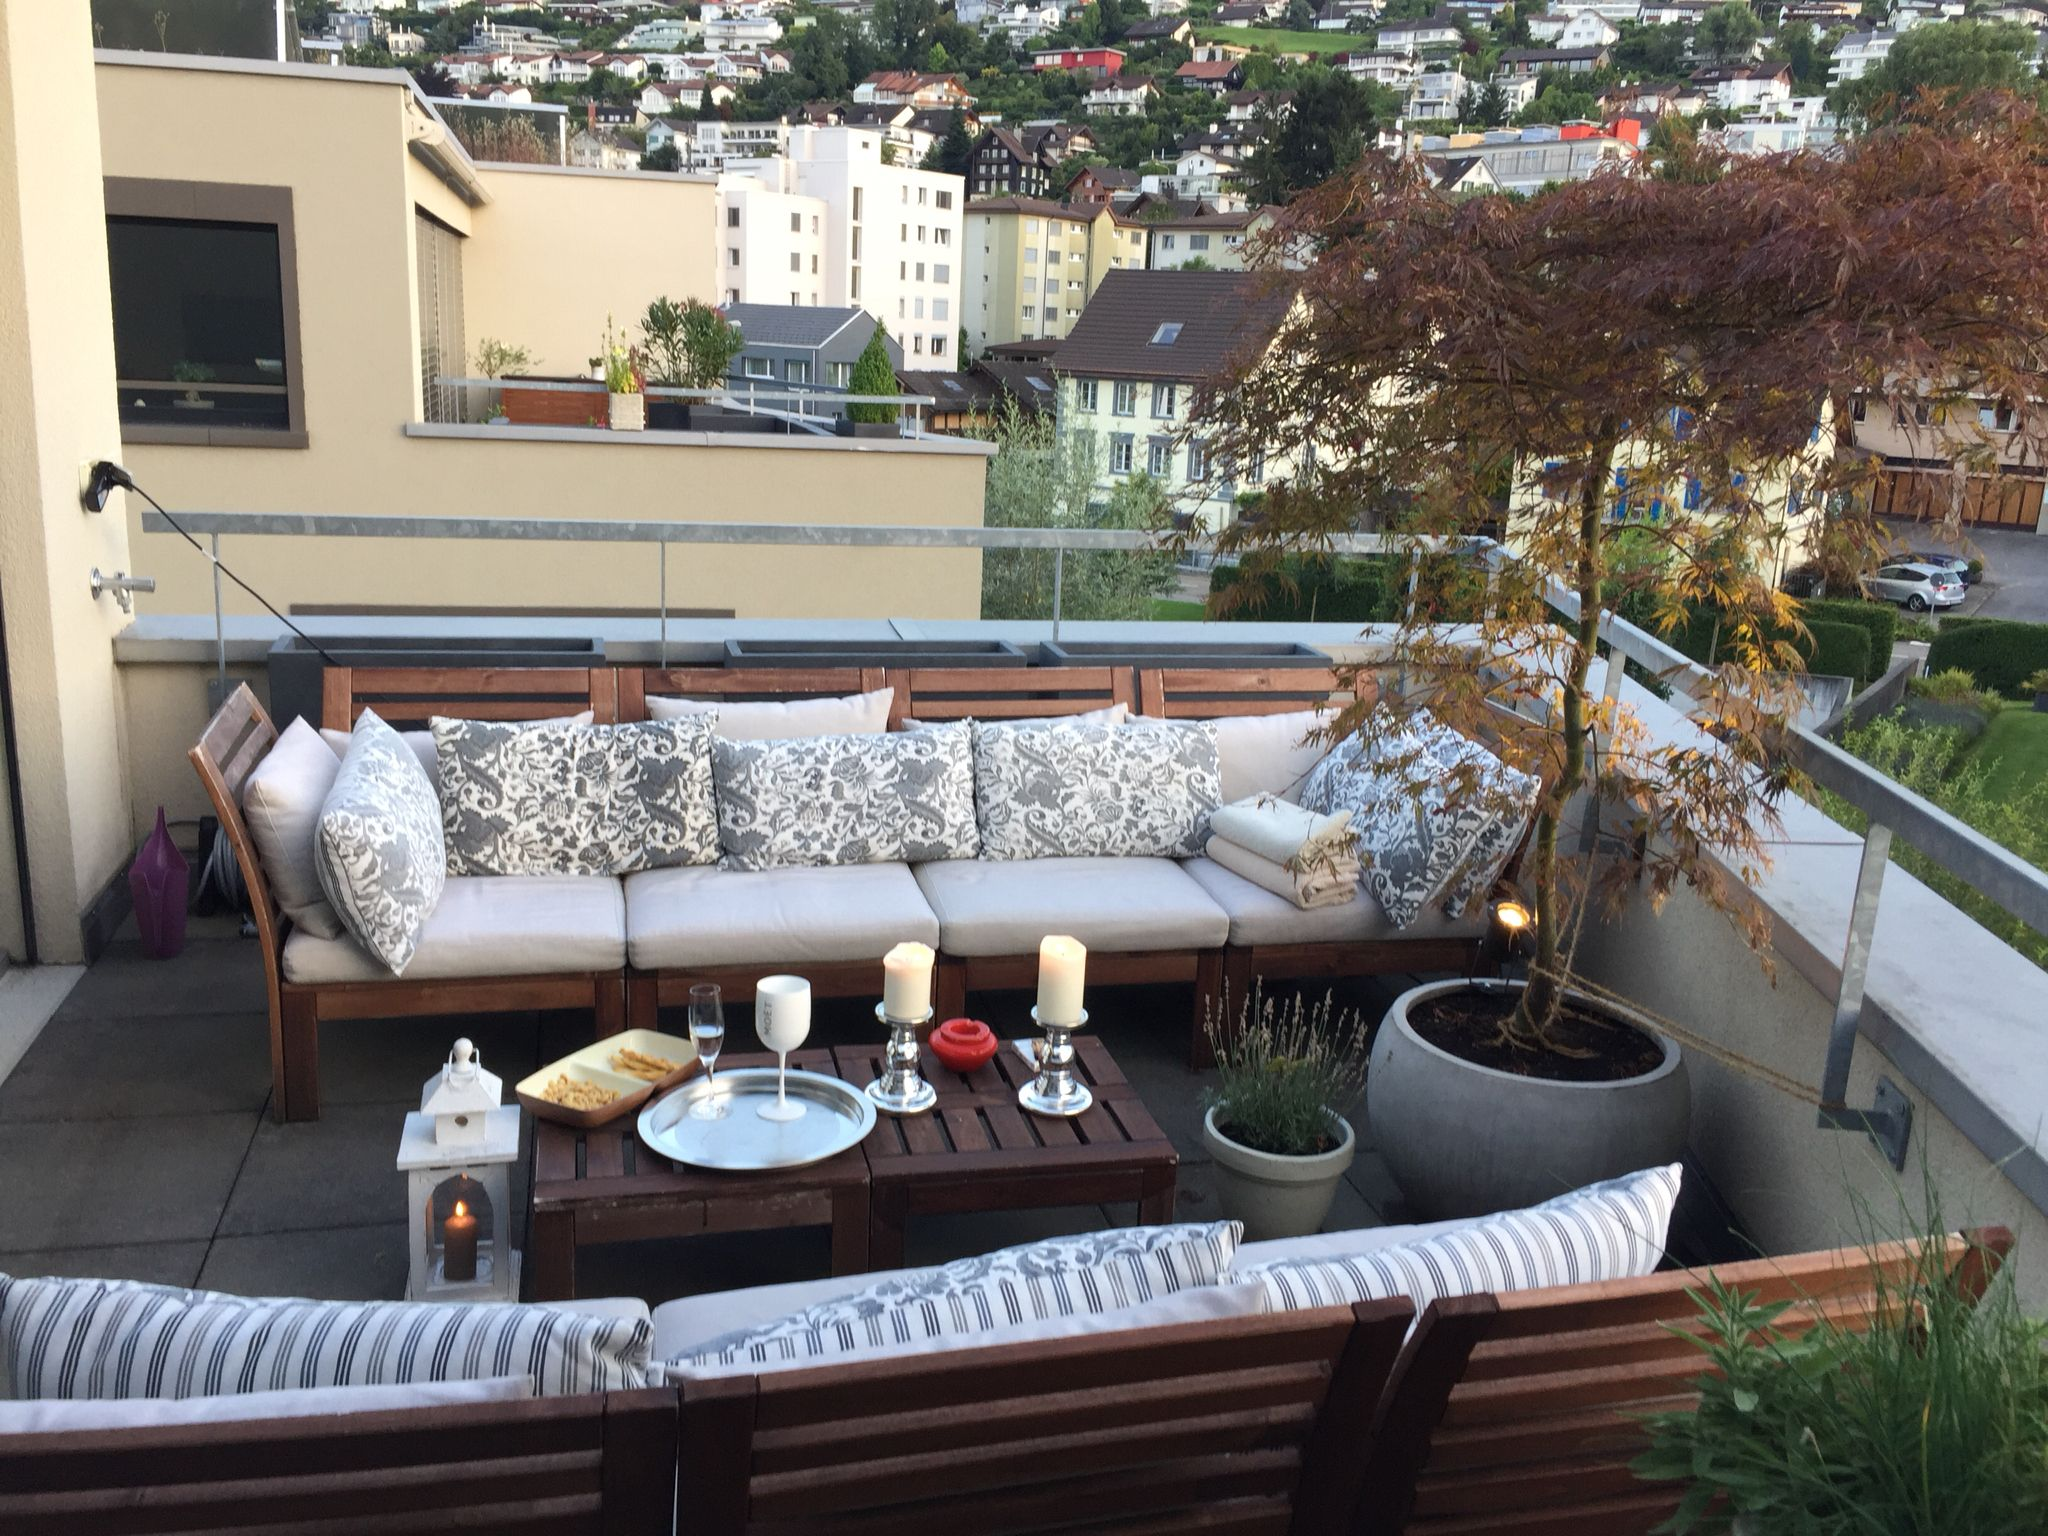 ikea balkon pplar balkon mit aussicht ikea lounge m bel mit kissen kerzen silbertablett und. Black Bedroom Furniture Sets. Home Design Ideas